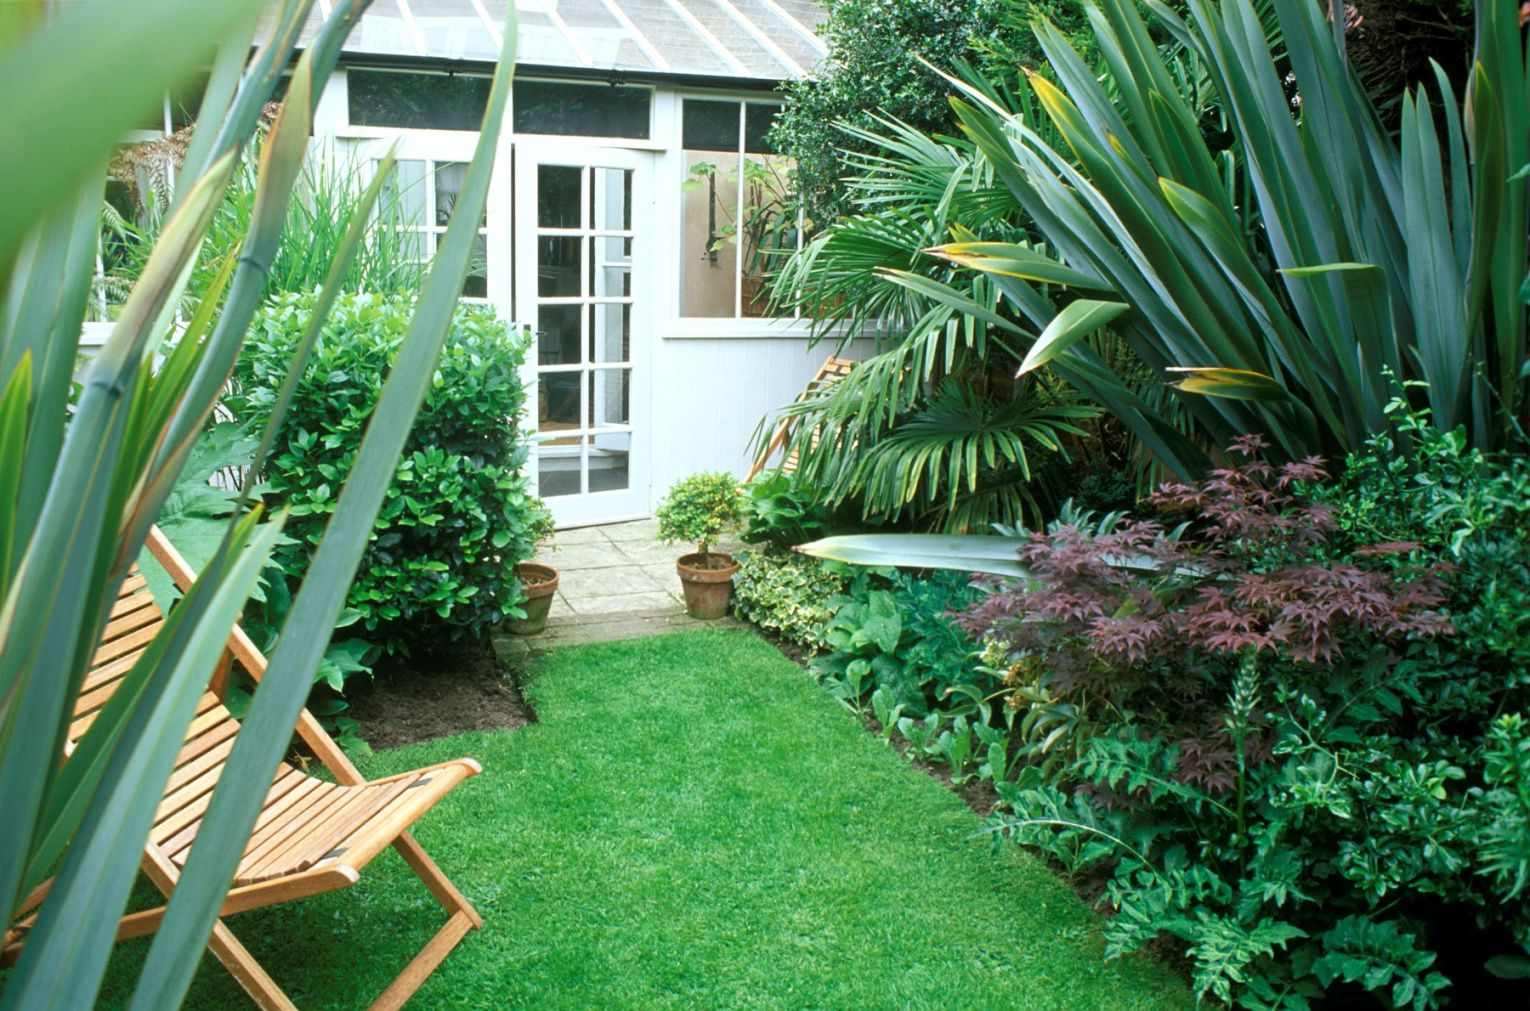 23 Landscaping Ideas for Small Backyards on Landscape Garden Designs For Small Gardens id=75017